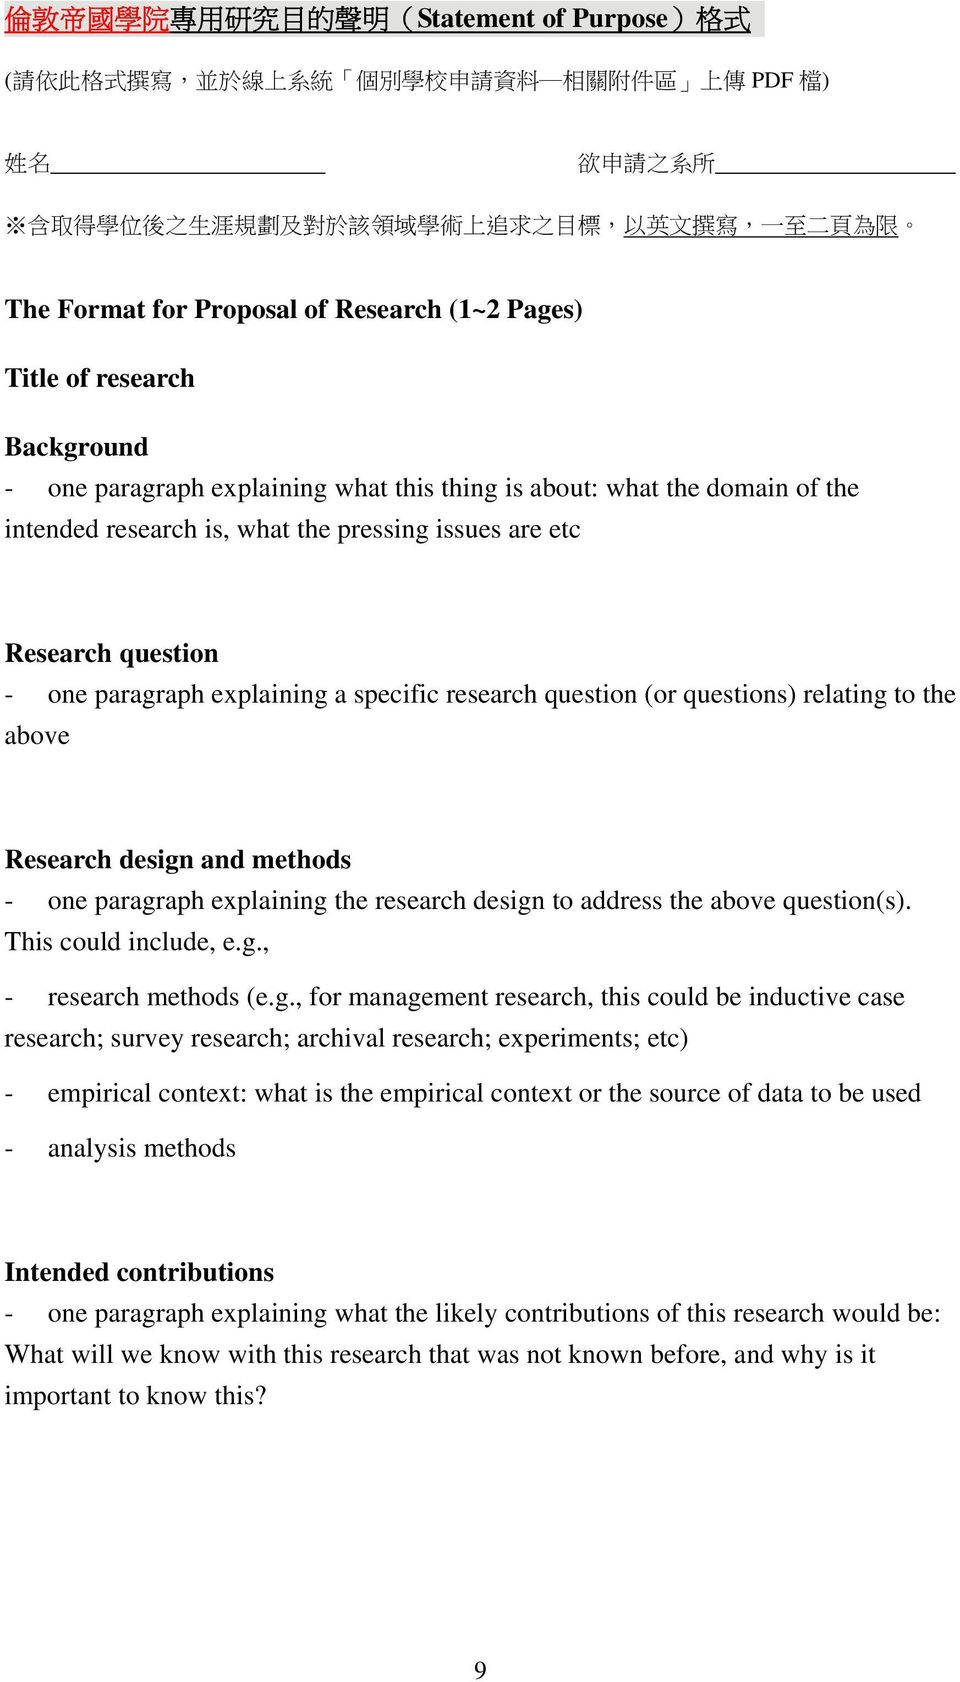 pressing issues are etc Research question - one paragraph explaining a specific research question (or questions) relating to the above Research design and methods - one paragraph explaining the